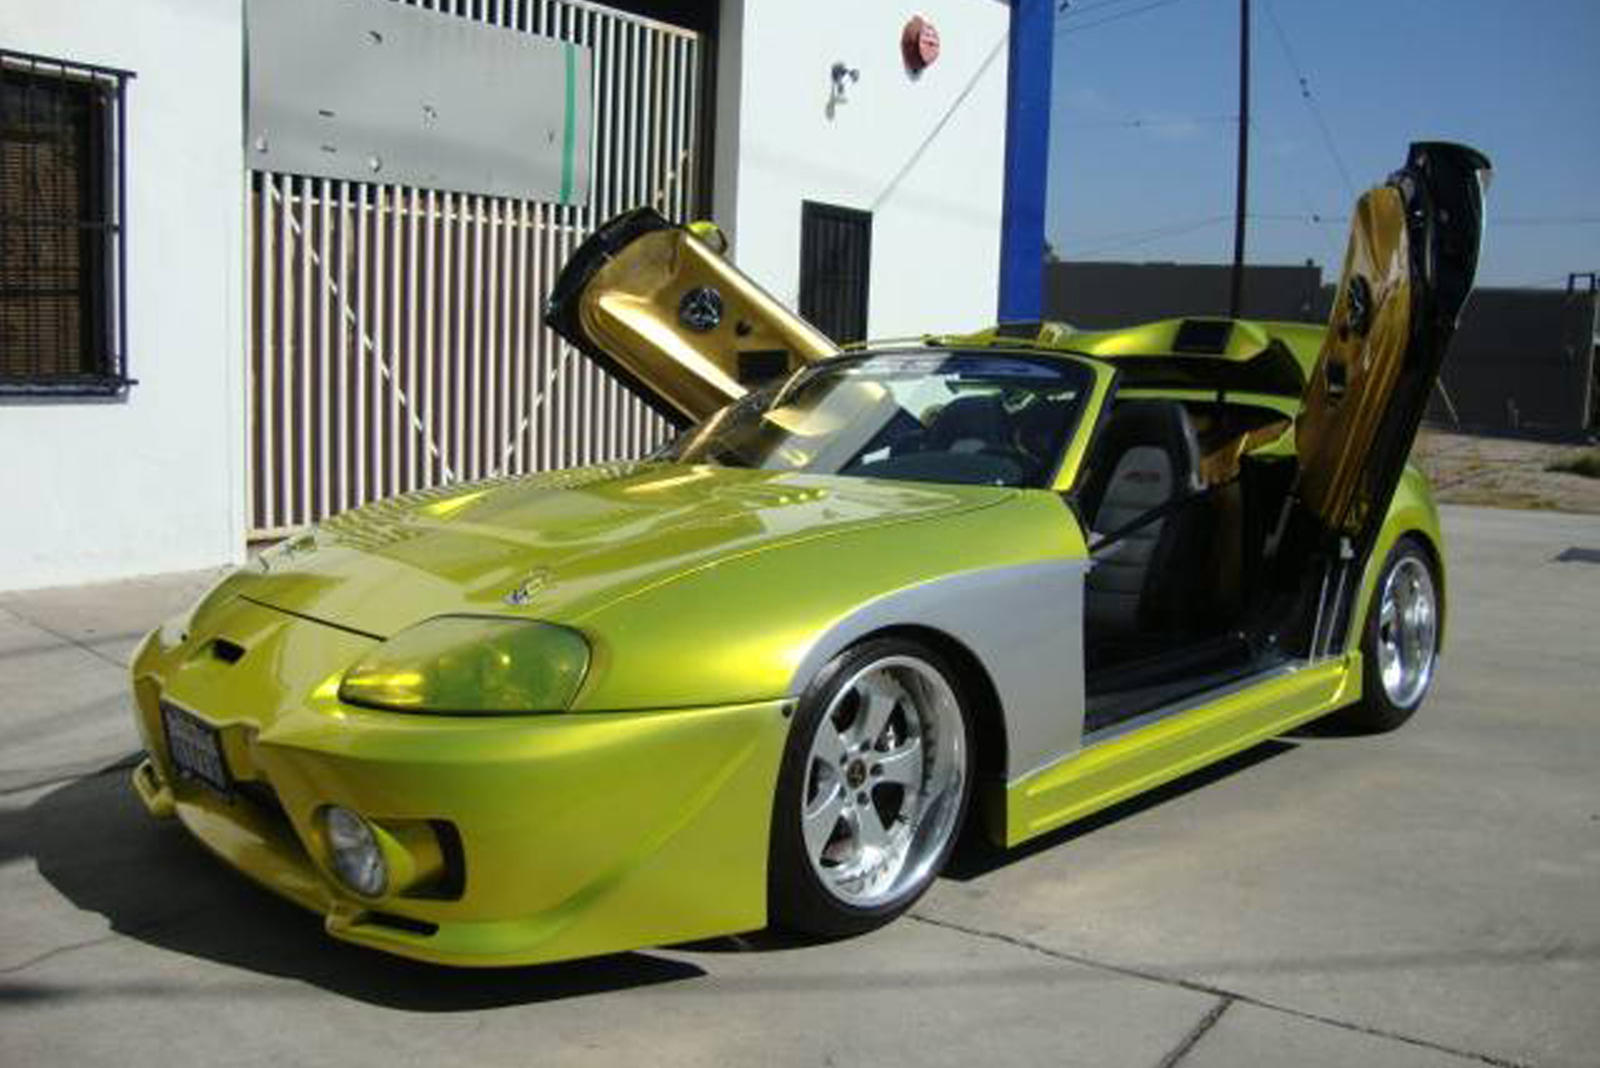 This Ugly Toyota Supra Costs Way Too Much Money | CarBuzz